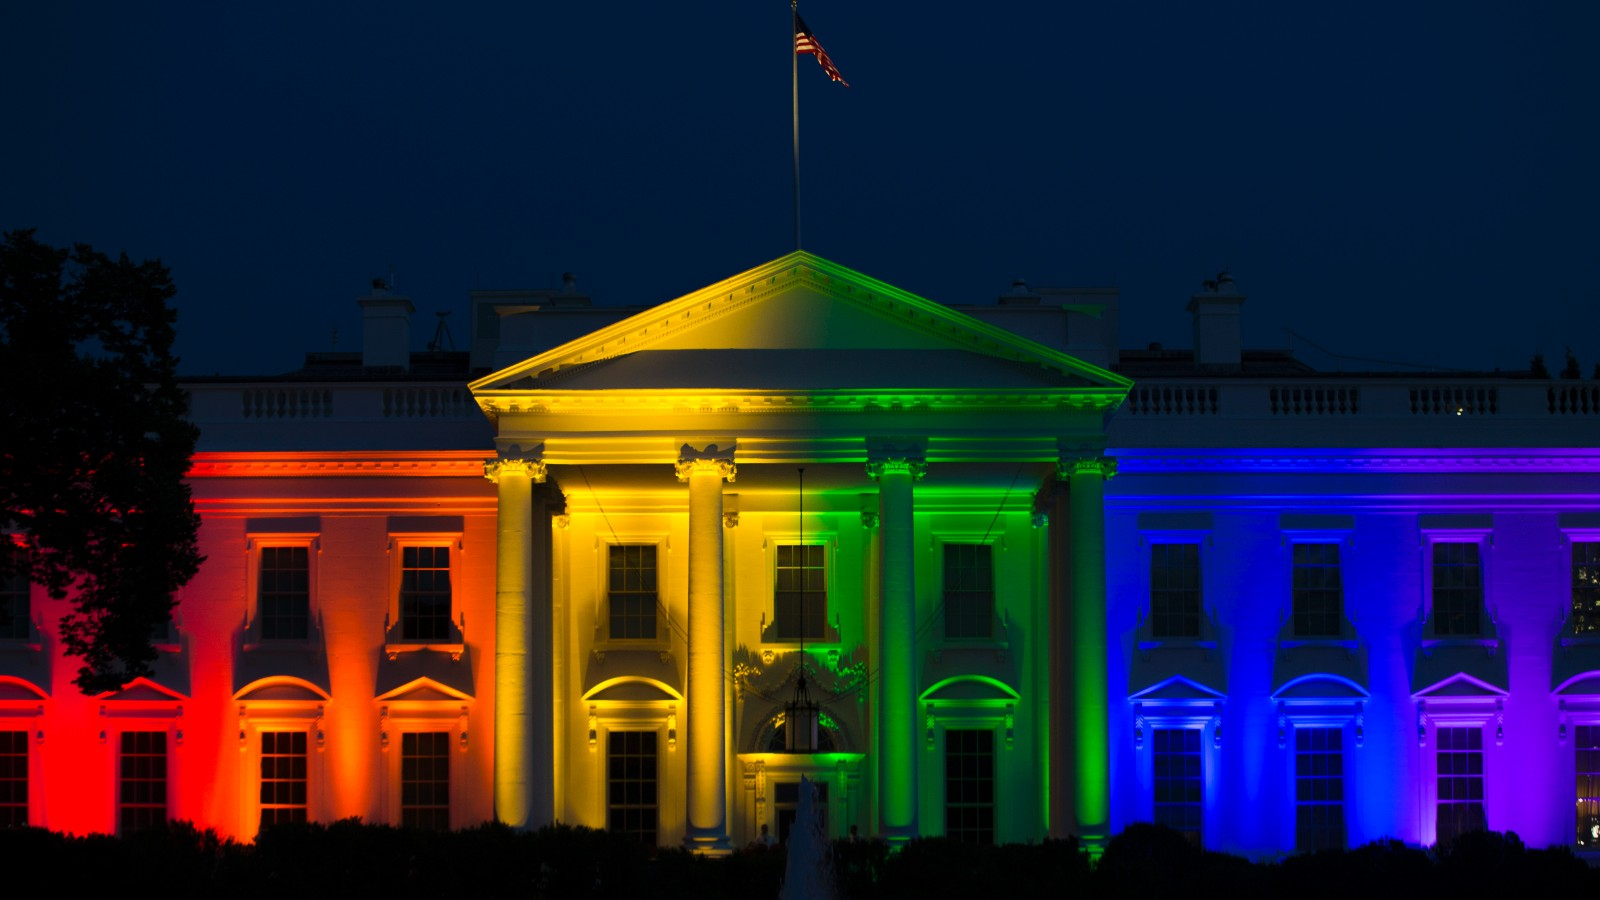 White House Lights With Rainbow Colors